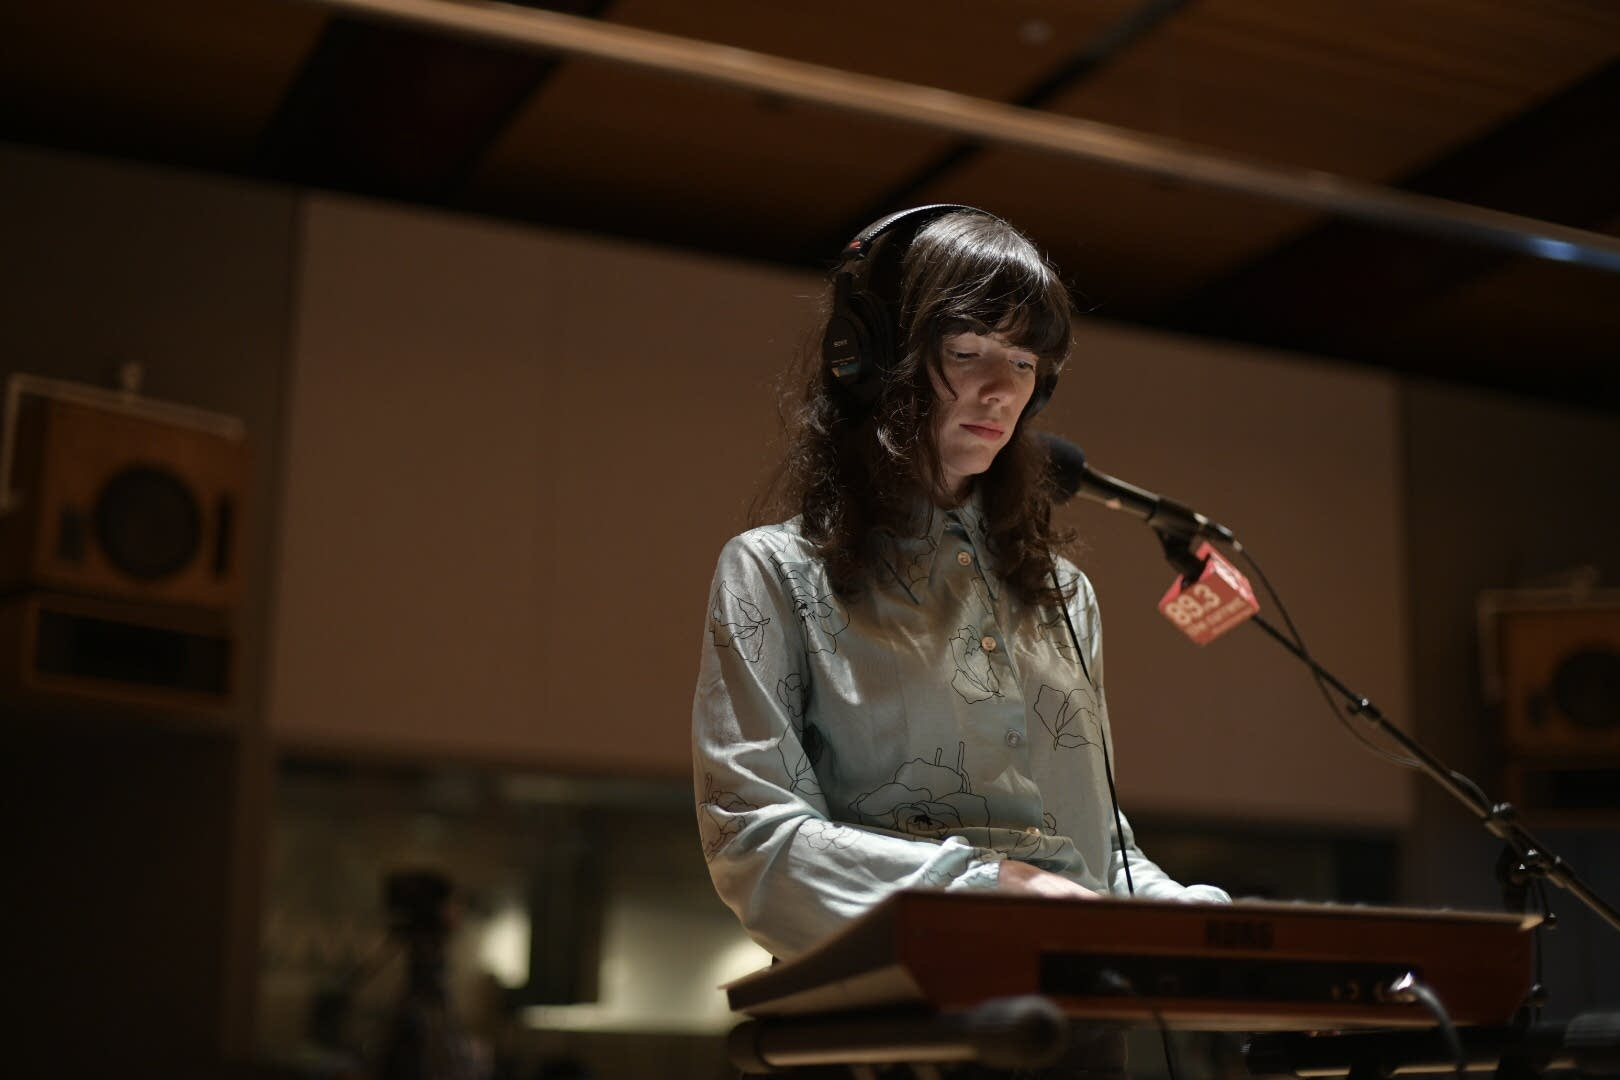 Natalie Prass performs in The Current's studio